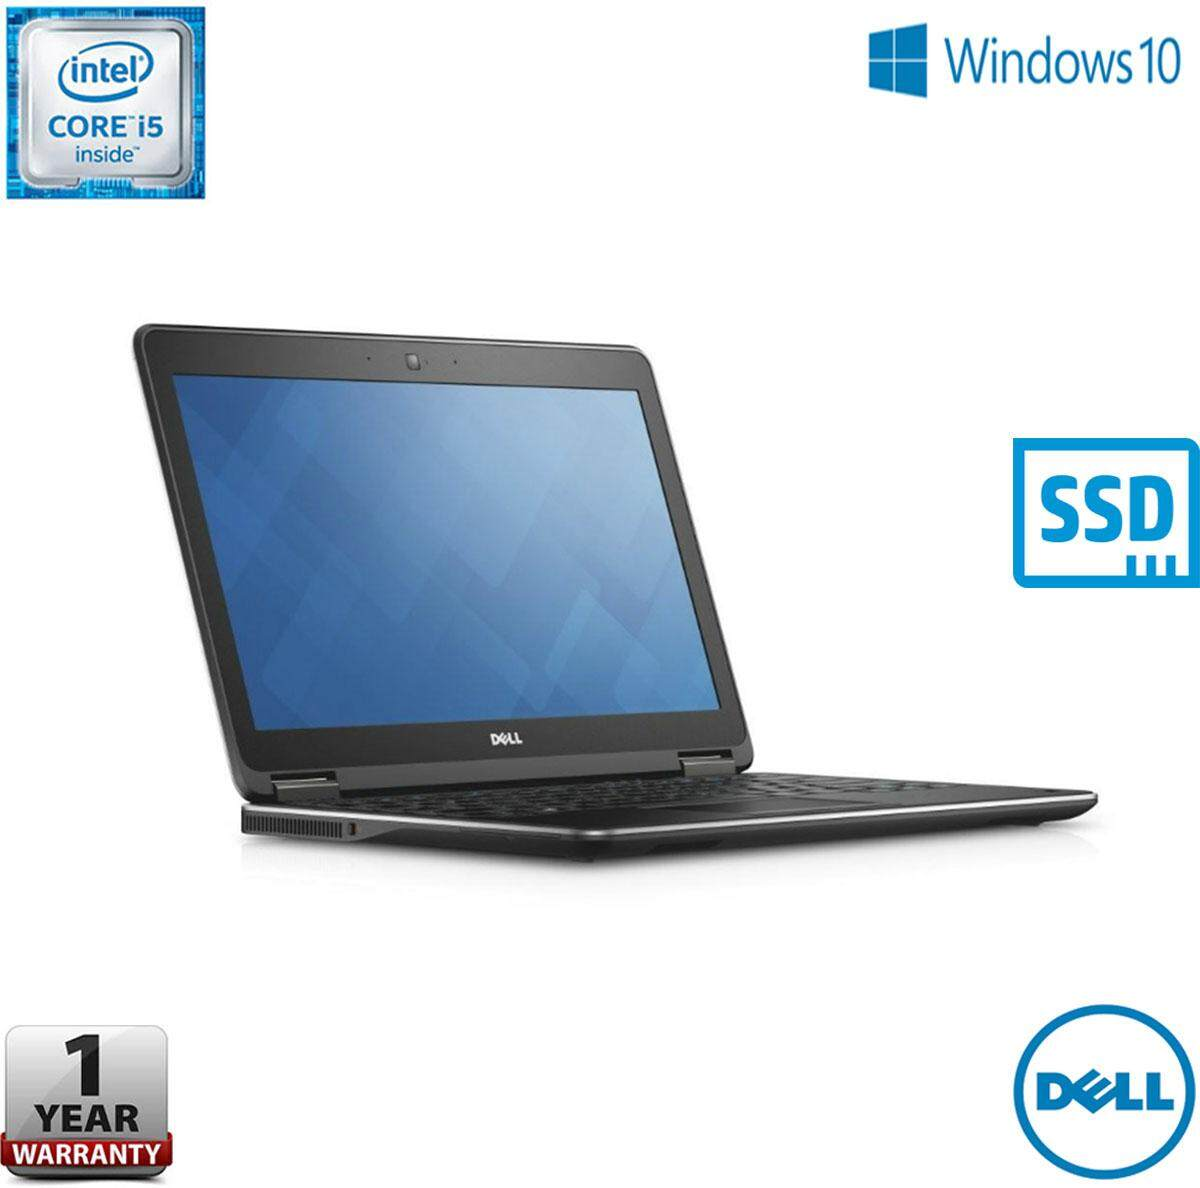 DELL LATITUDE E7250 12.5 INCH ULTRABOOK [CORE i5-5TH GEN / 8GB RAM / 256GB SSD STORAGE / 1 YEAR WARRANTY / FREE BAG] Malaysia